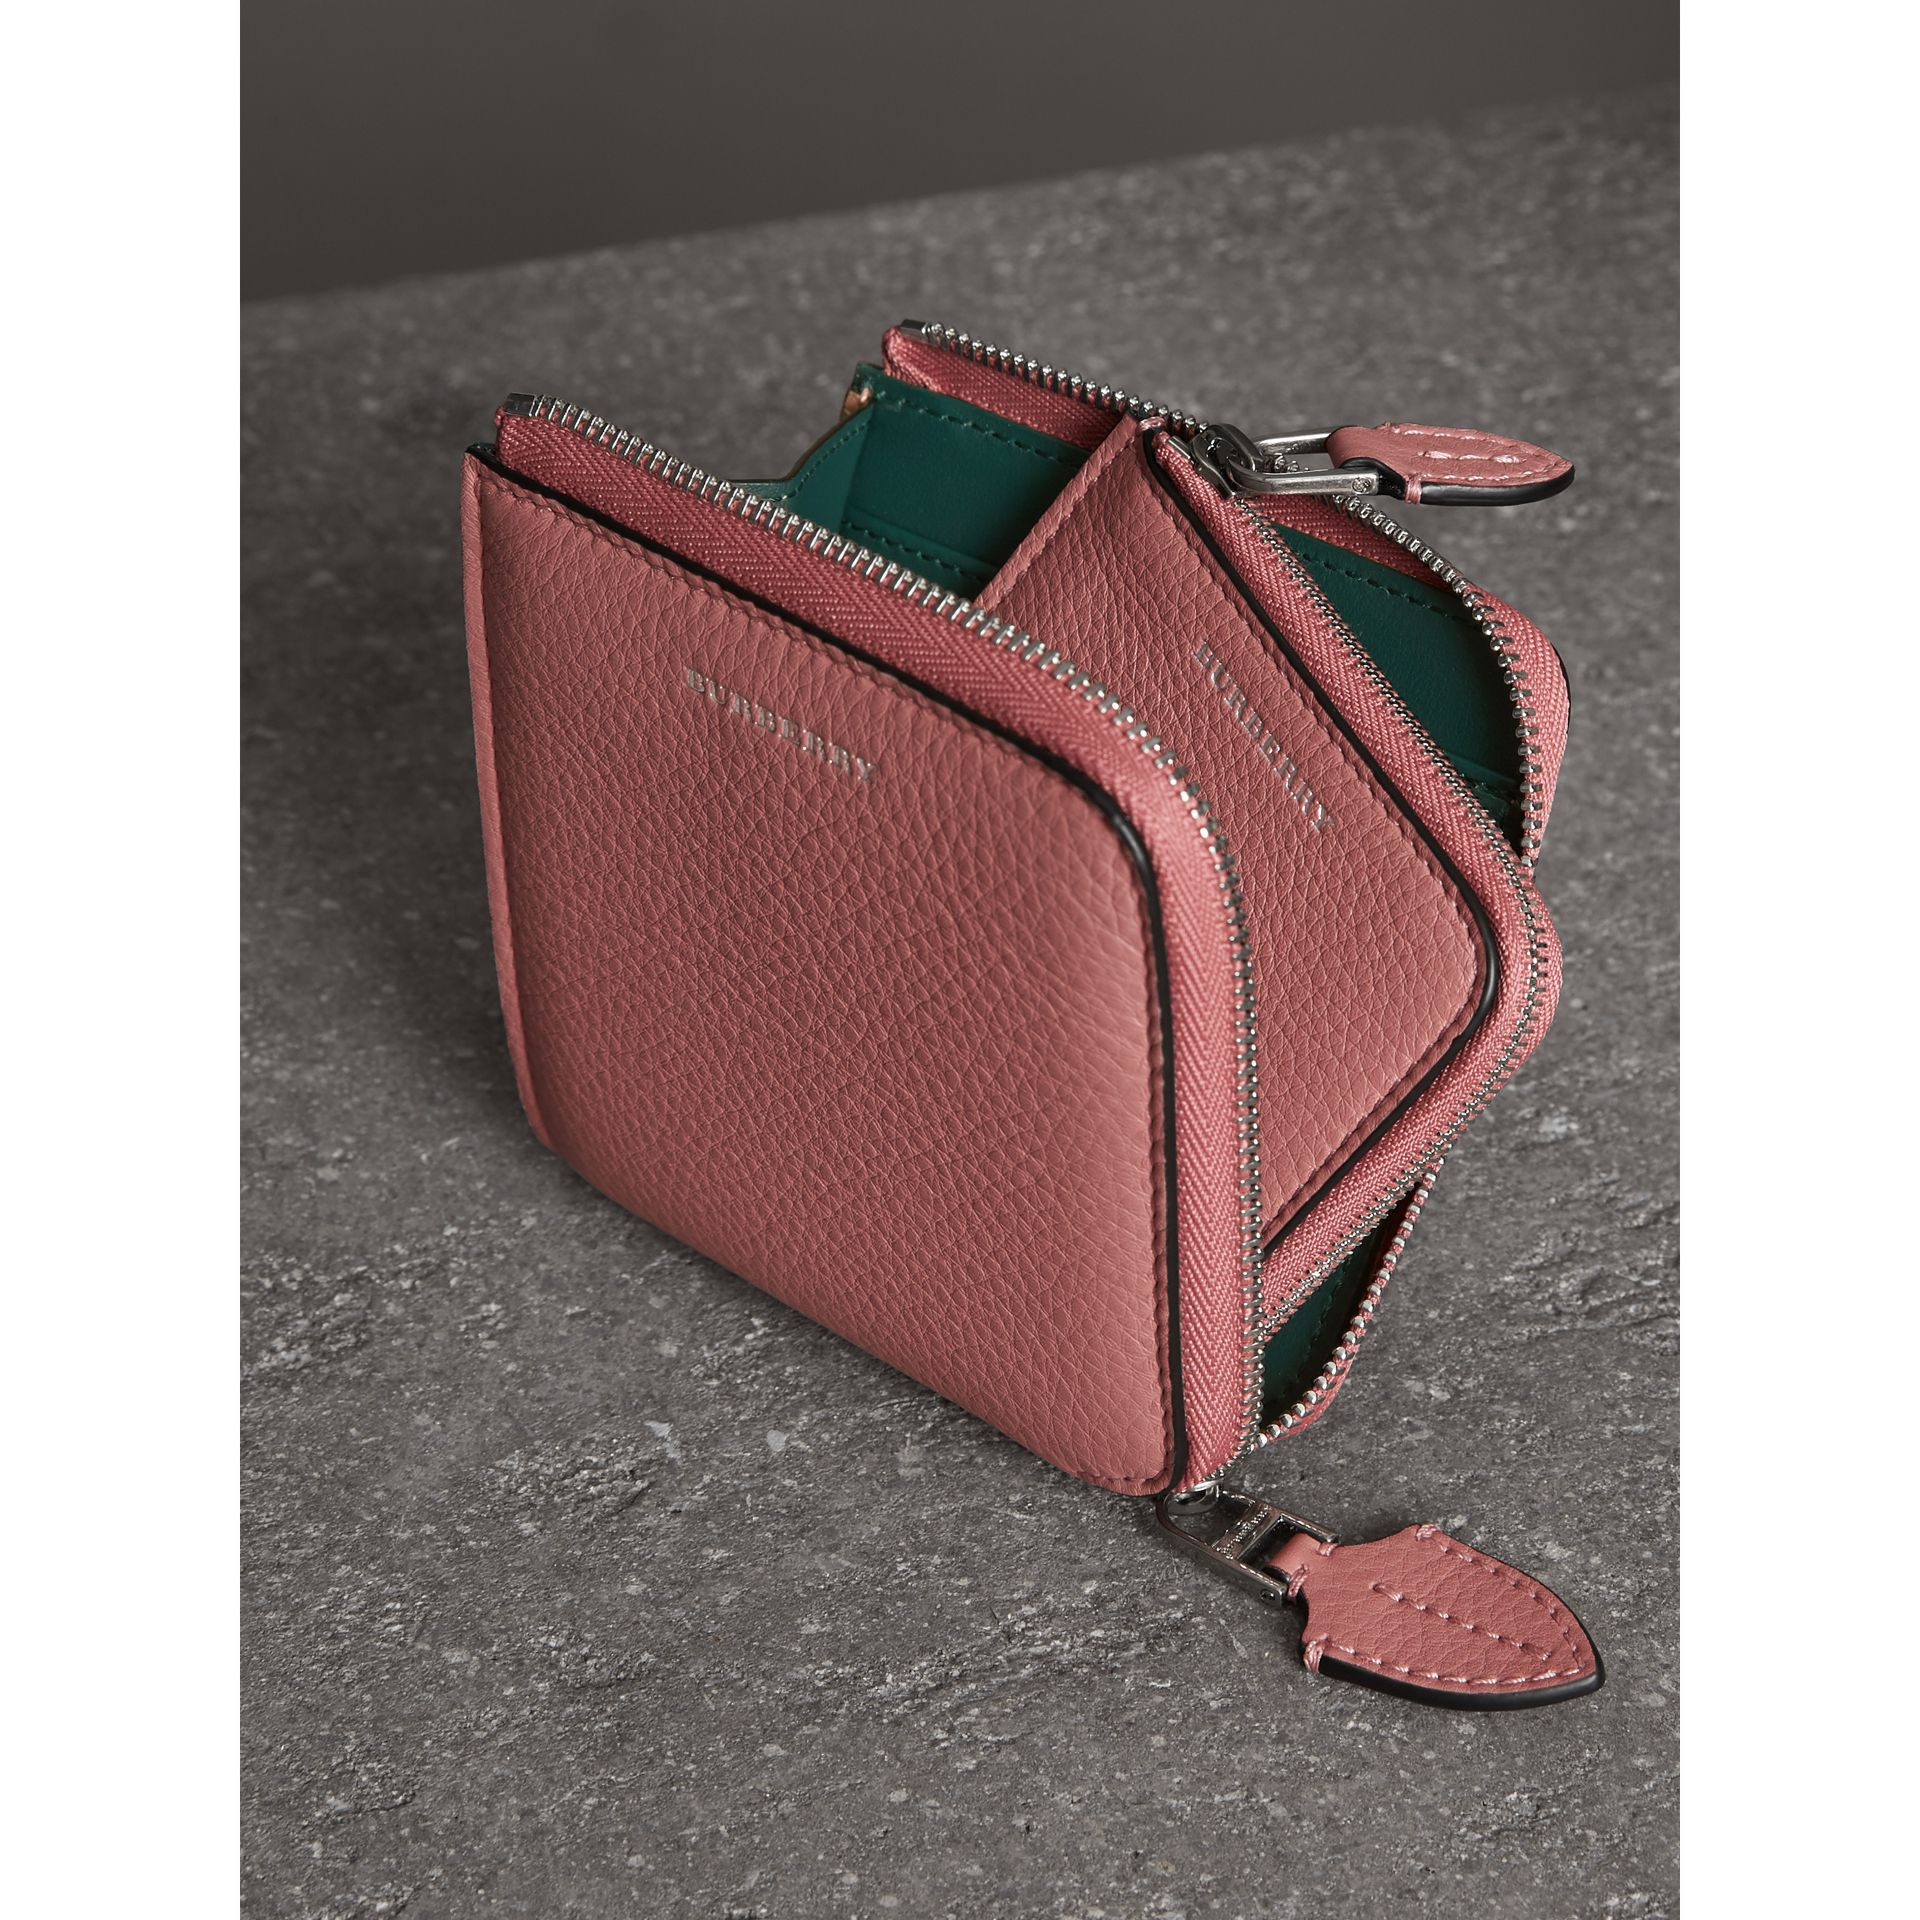 Grainy Leather Square Ziparound Wallet in Dusty Rose - Women | Burberry Singapore - gallery image 3